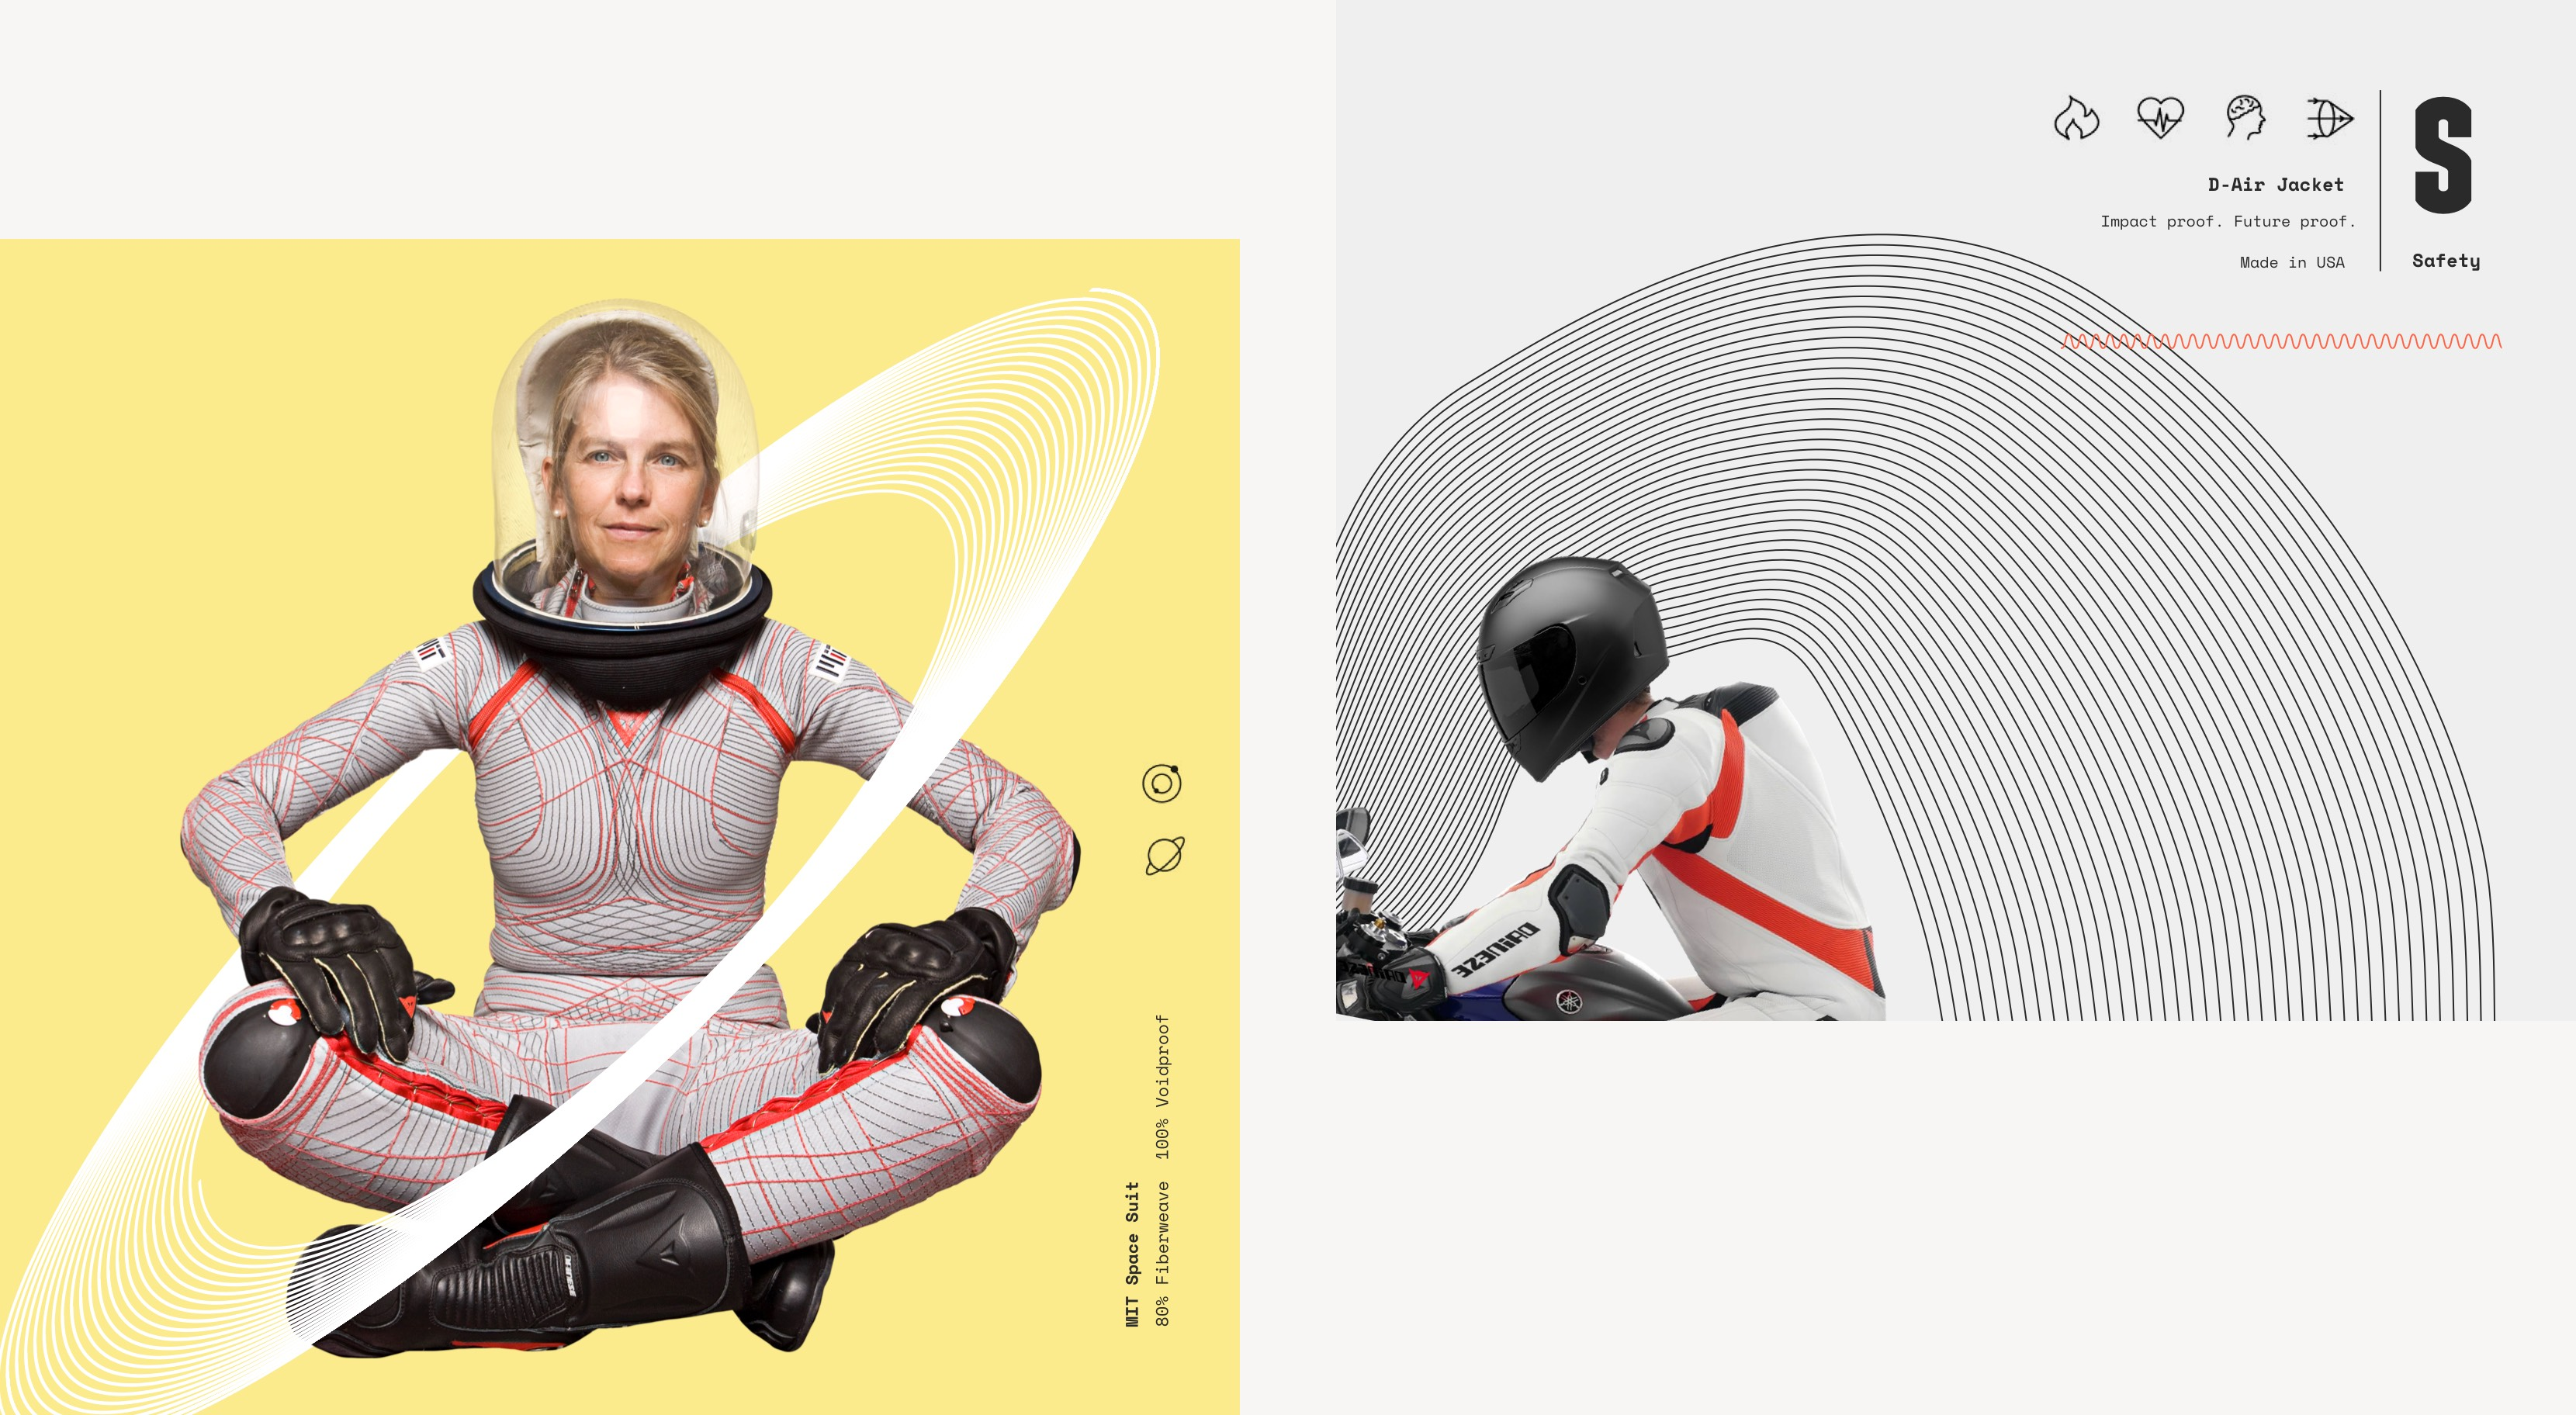 Wired to Wear brand design mood boards, showing female astronaut and motorcycle rider.